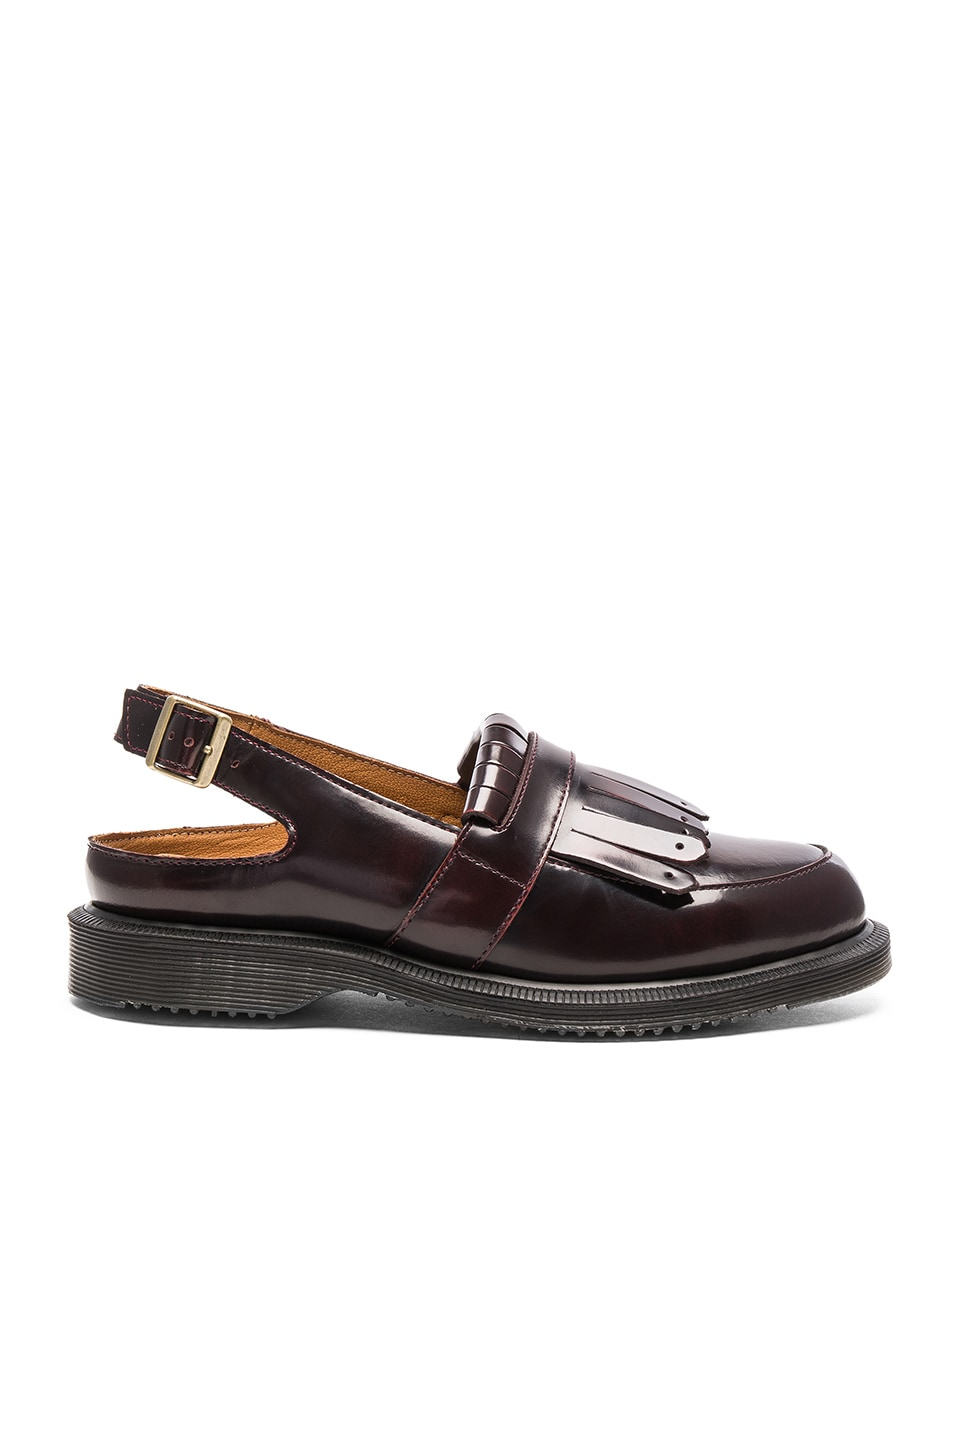 Dr. Martens Valentine Sling Back Tassel Flat in Cherry Red